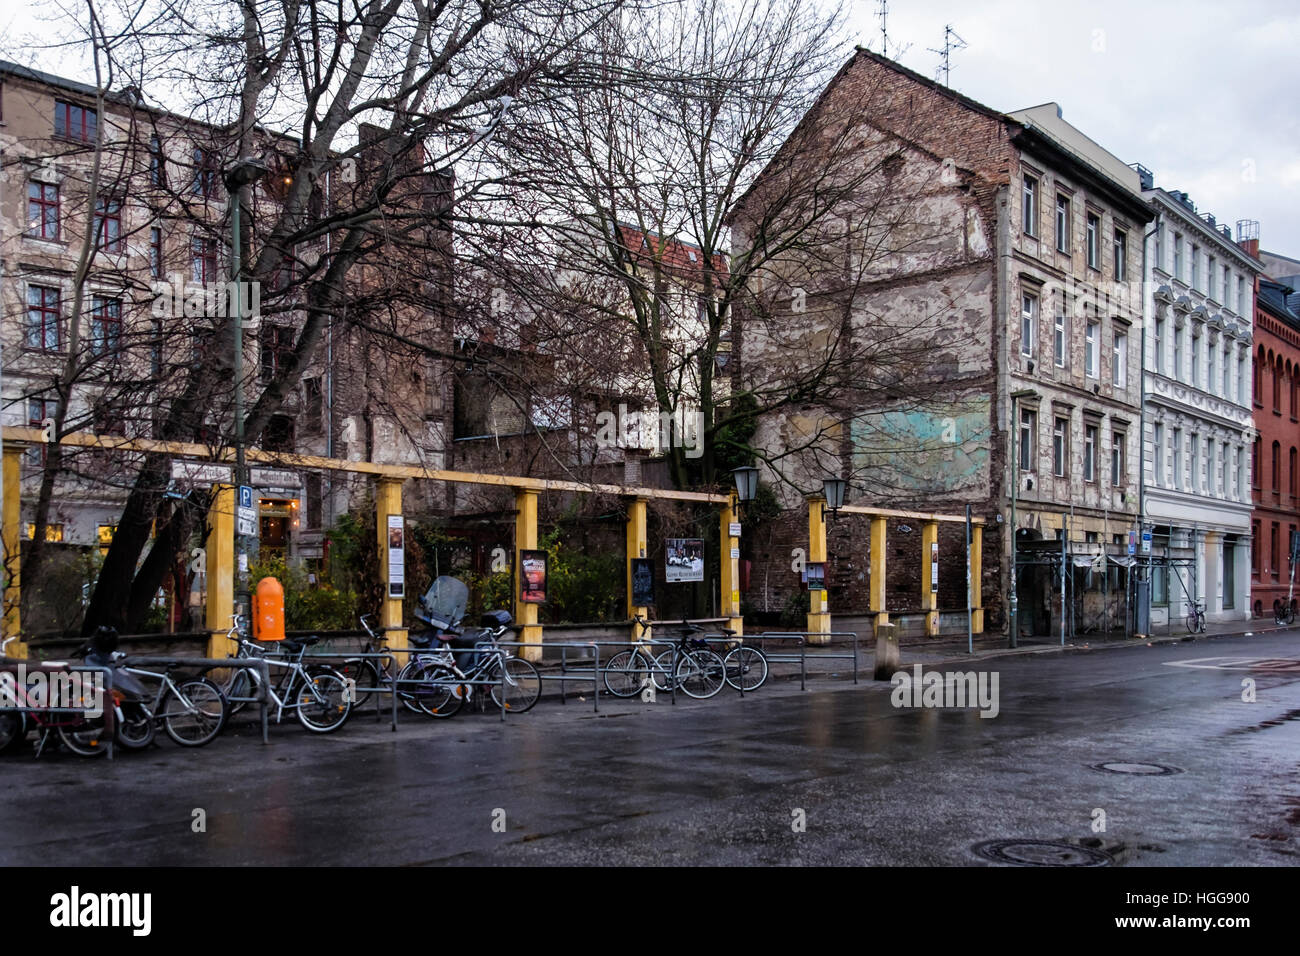 Berlin, Mitte. Old buildings with shadow of an old structure on adjacent building & Garden of Clärchens - Stock Image